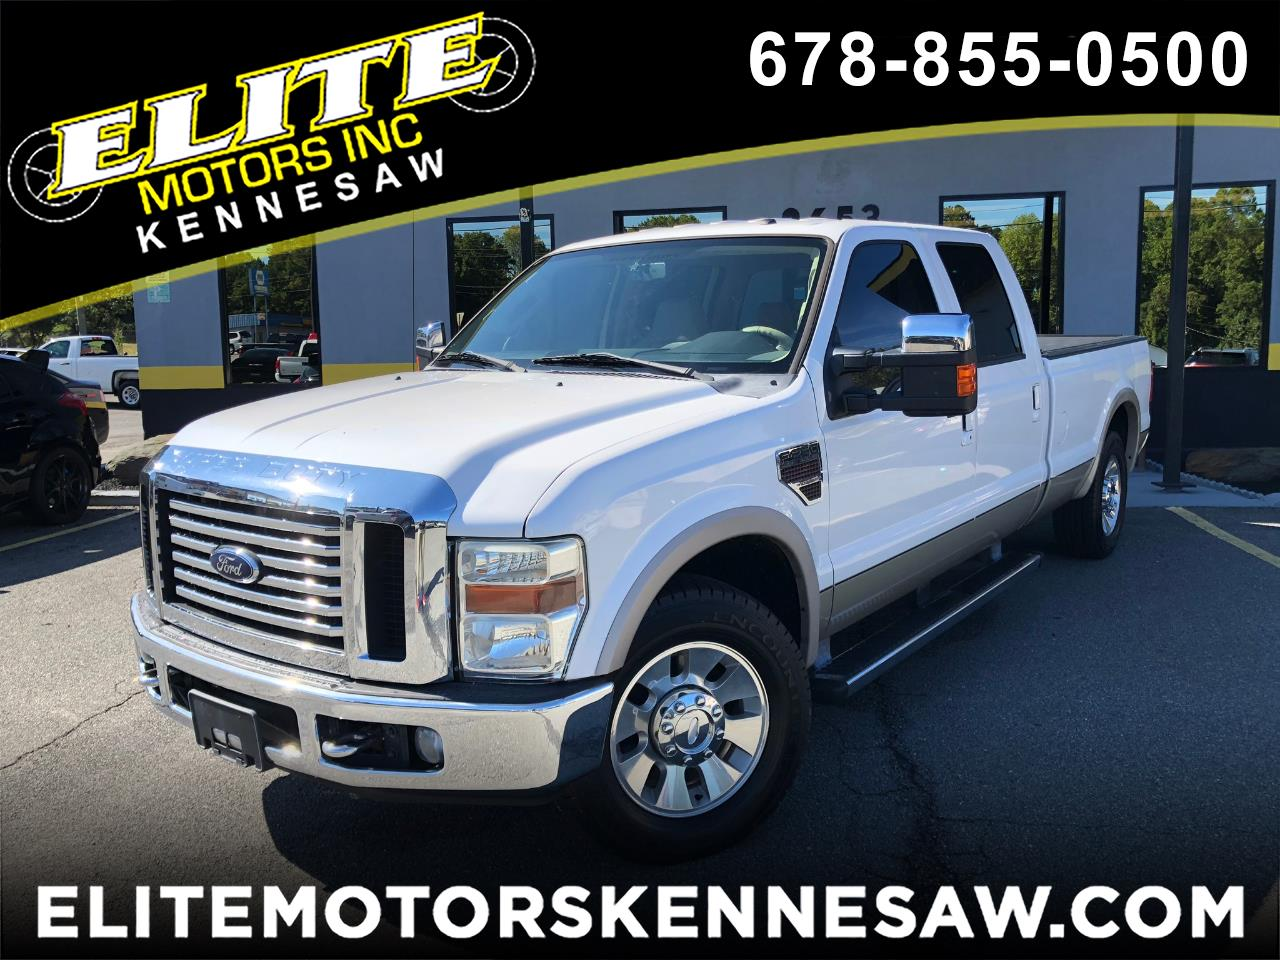 2010 Ford F-250 SD Lariat Crew Cab Long Bed 2WD